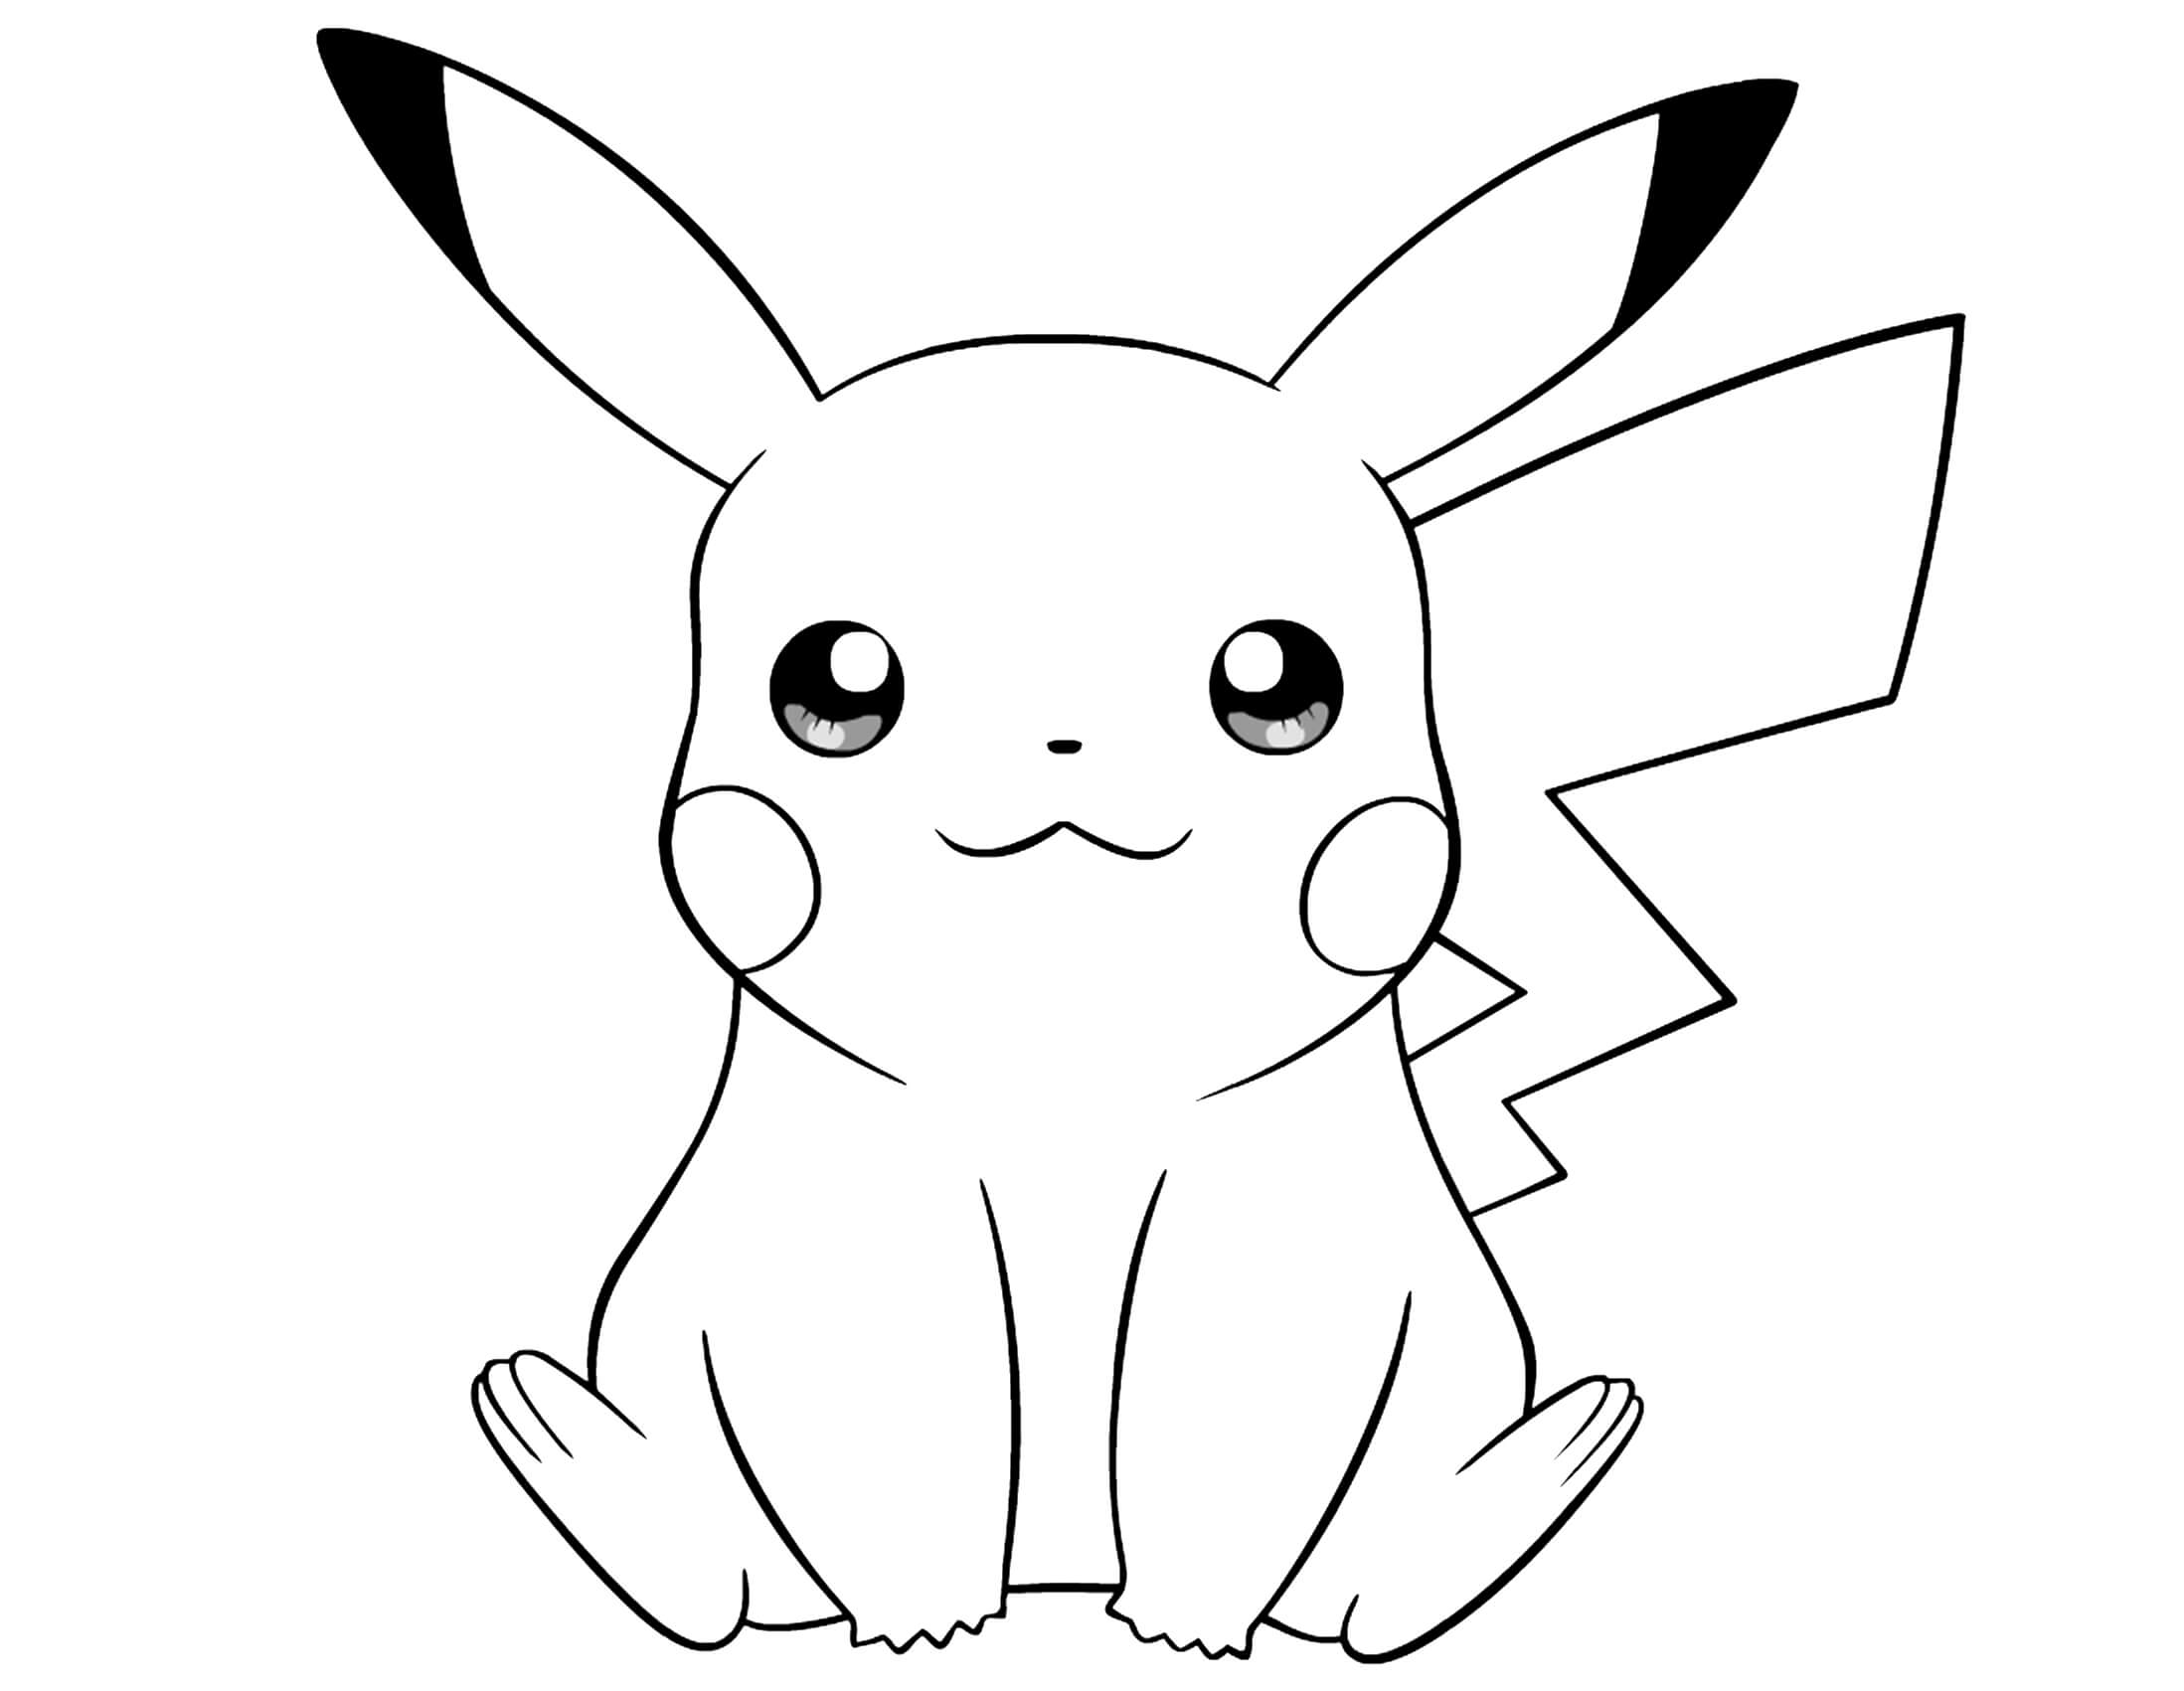 pikachu images for coloring pikachu coloring pages free large images images coloring for pikachu